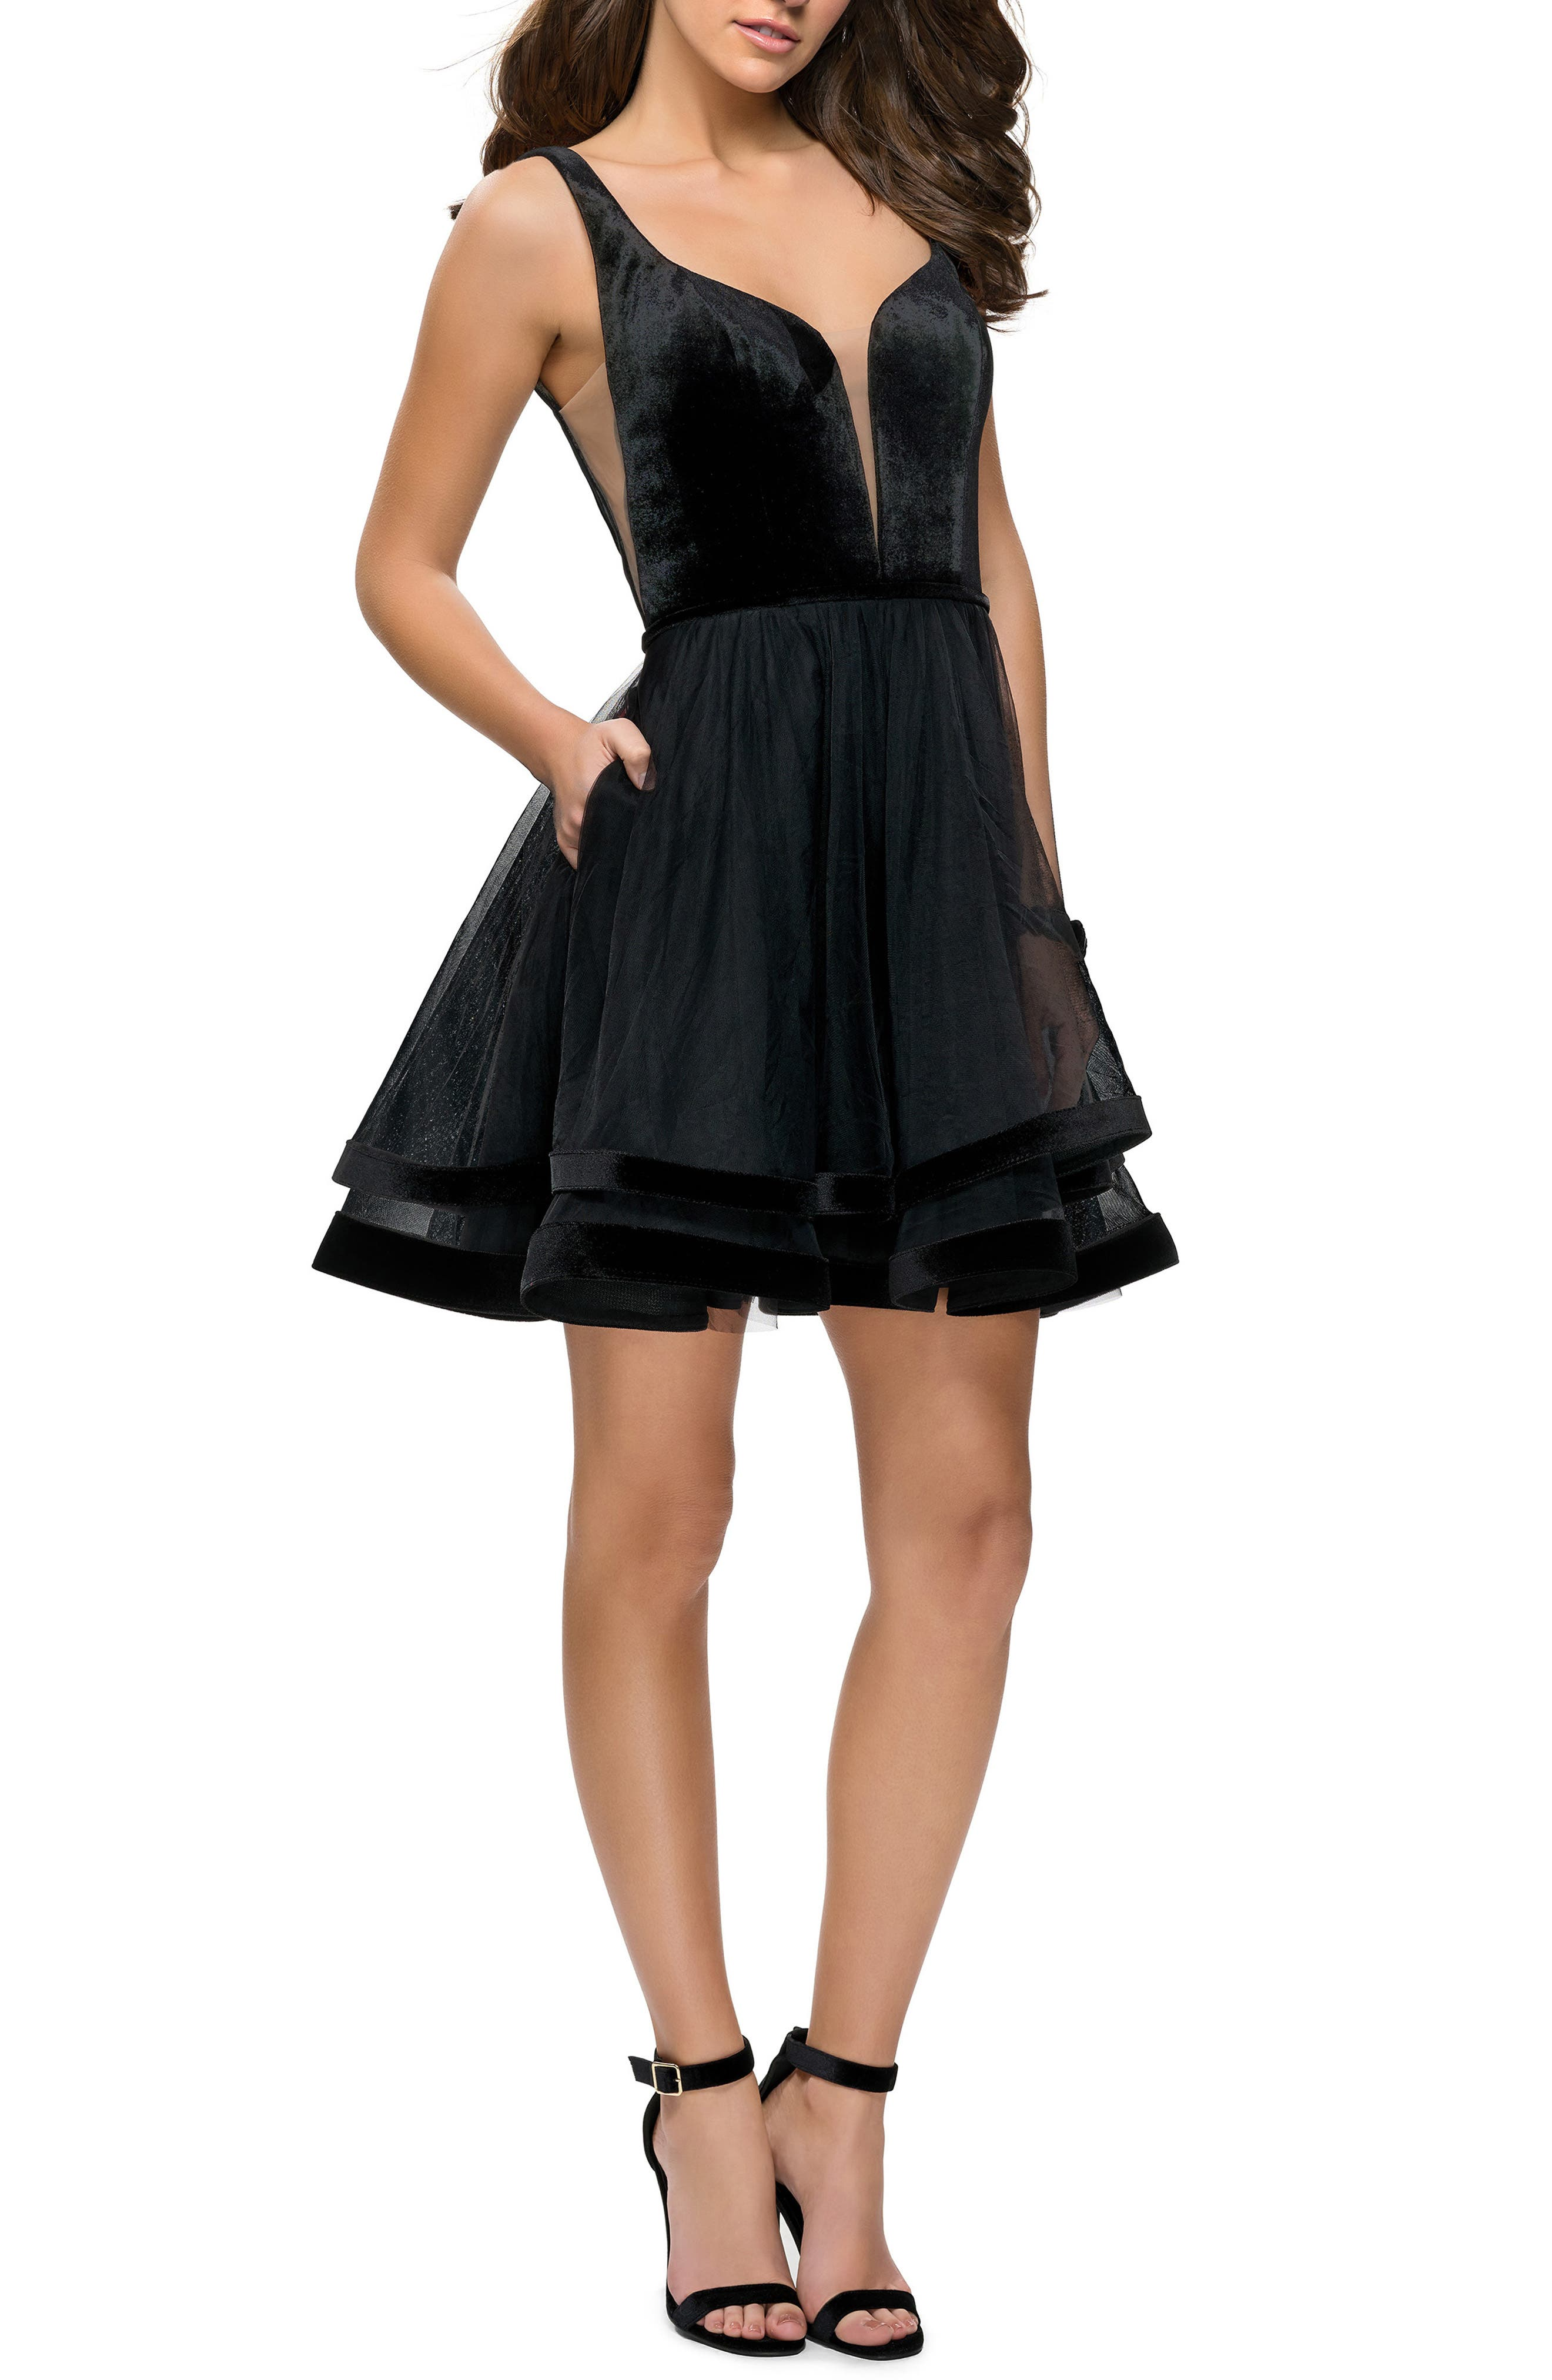 La Femme Velvet & Tulle Party Dress, Black